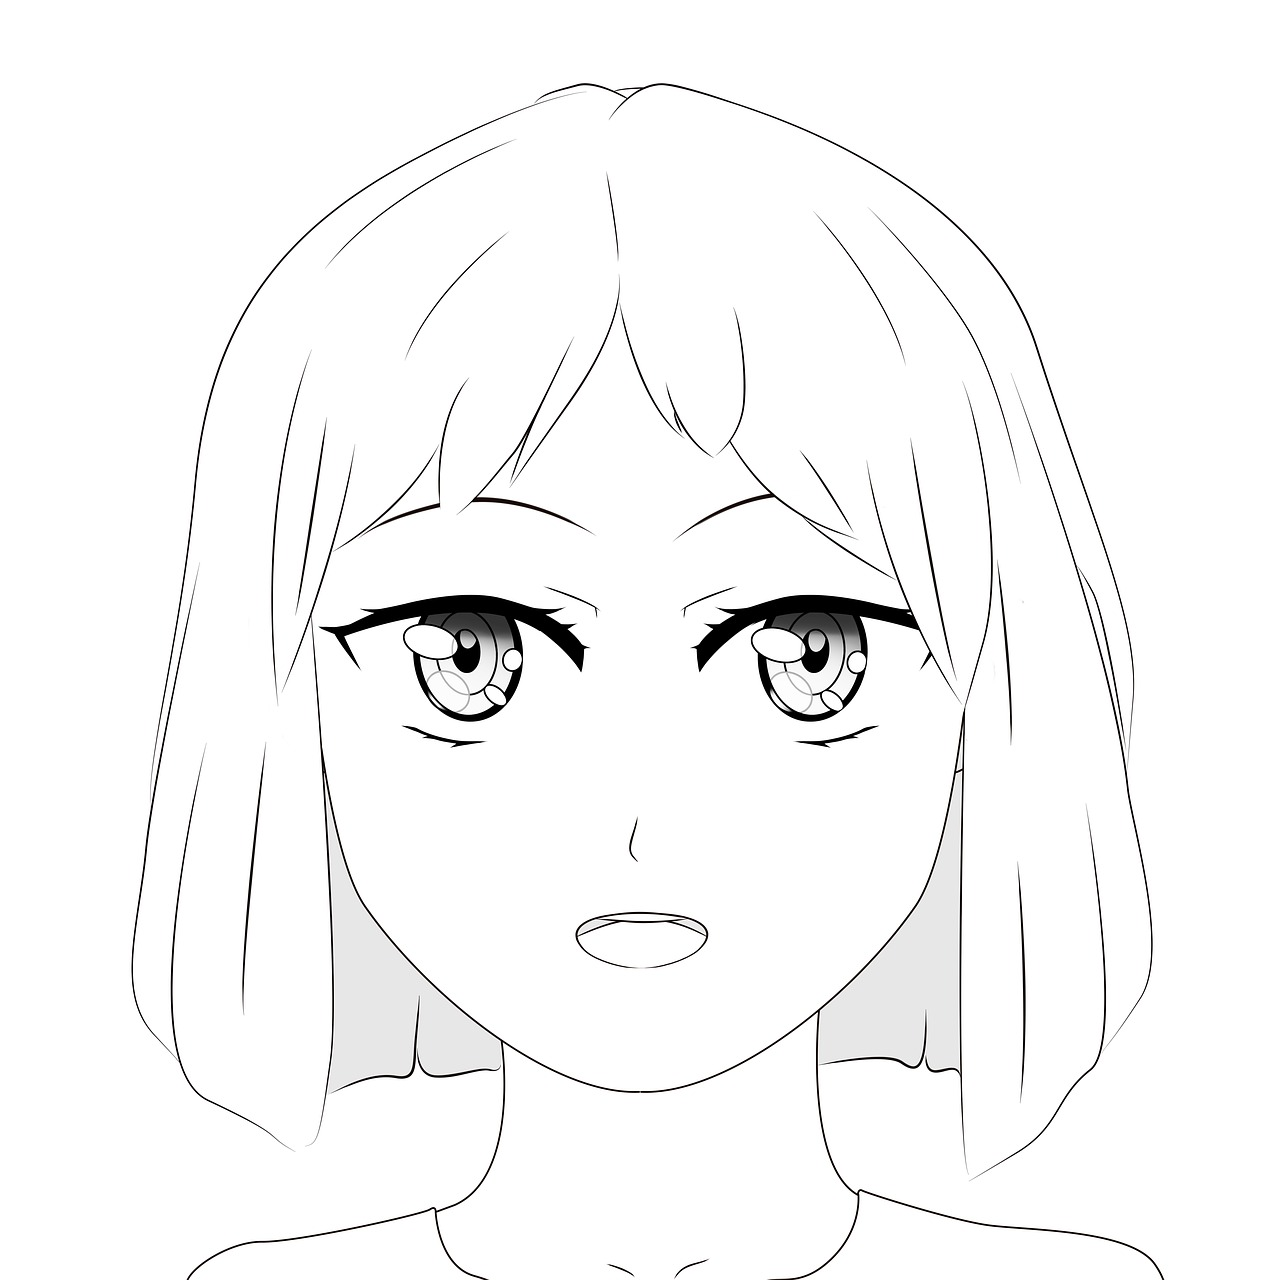 Drawing a face is an art of representing your skills.